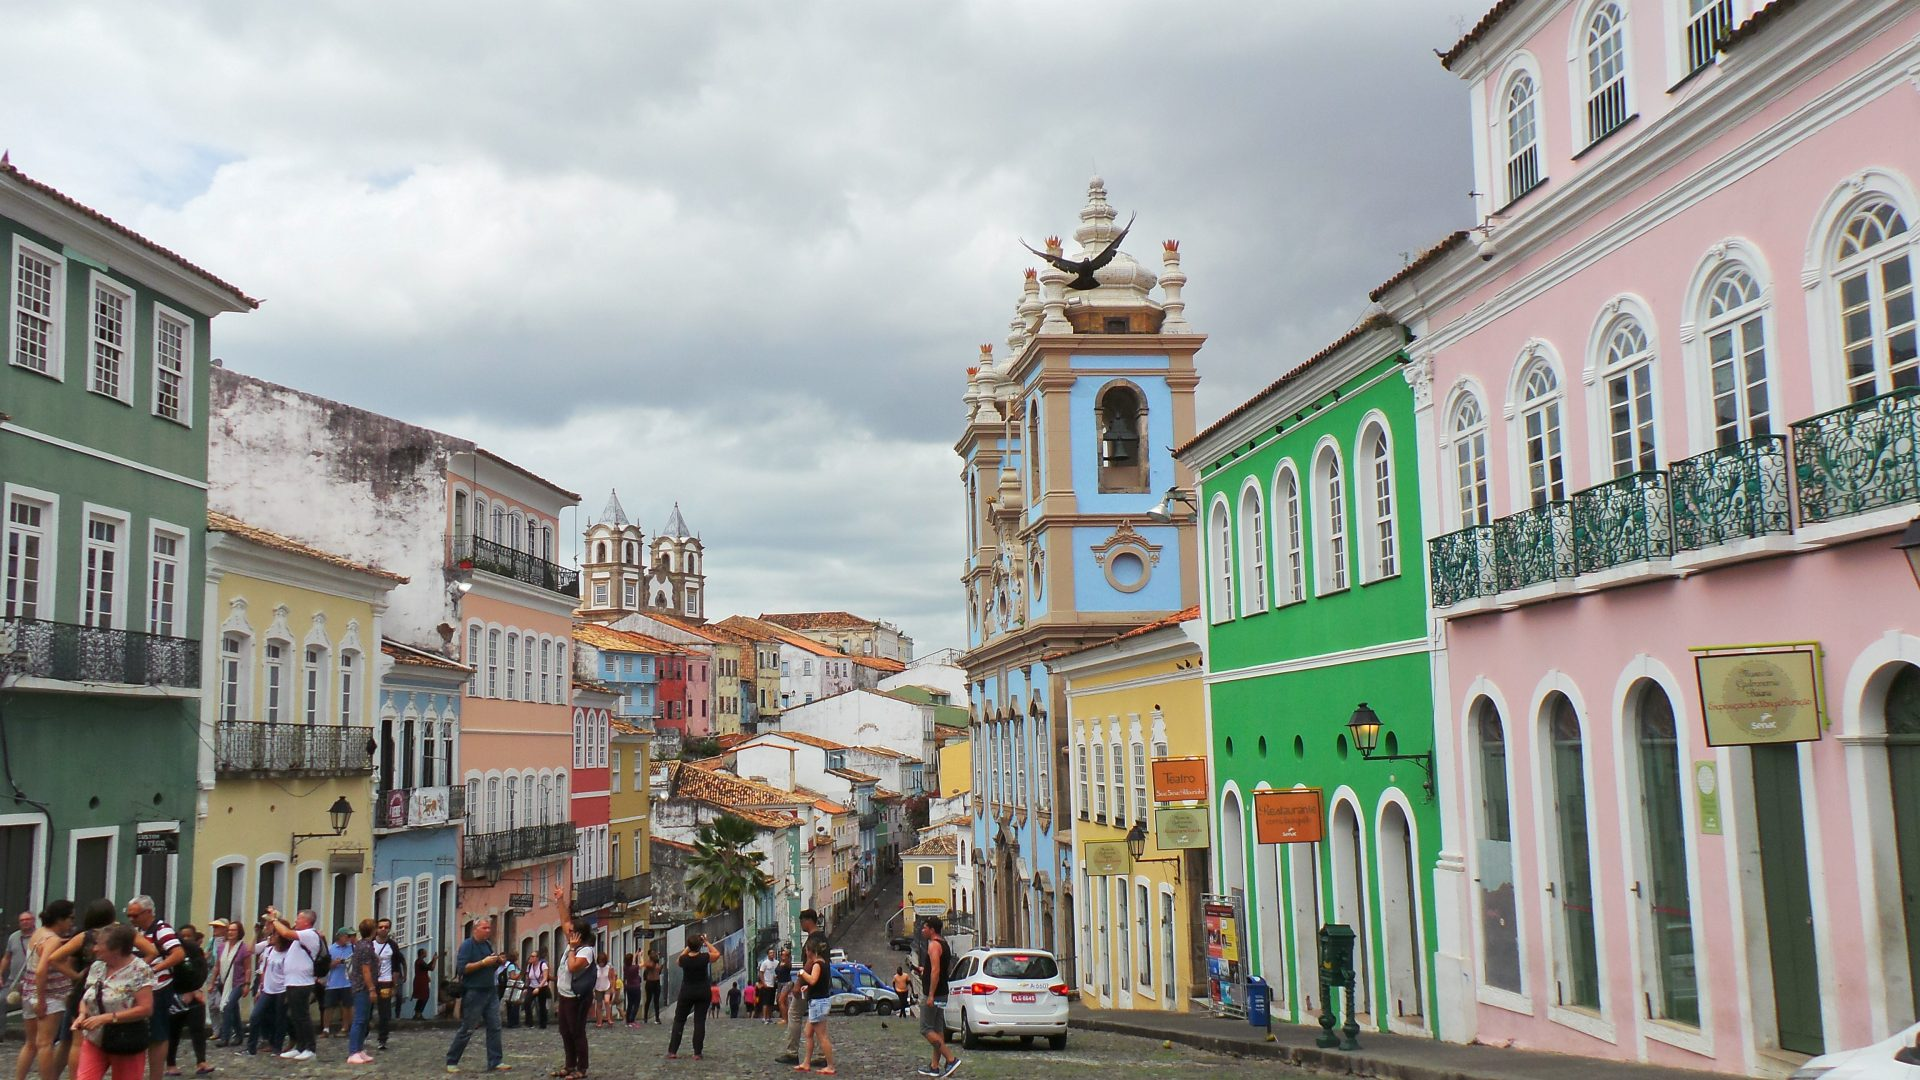 People standing in a street full of colourful colonial buildings